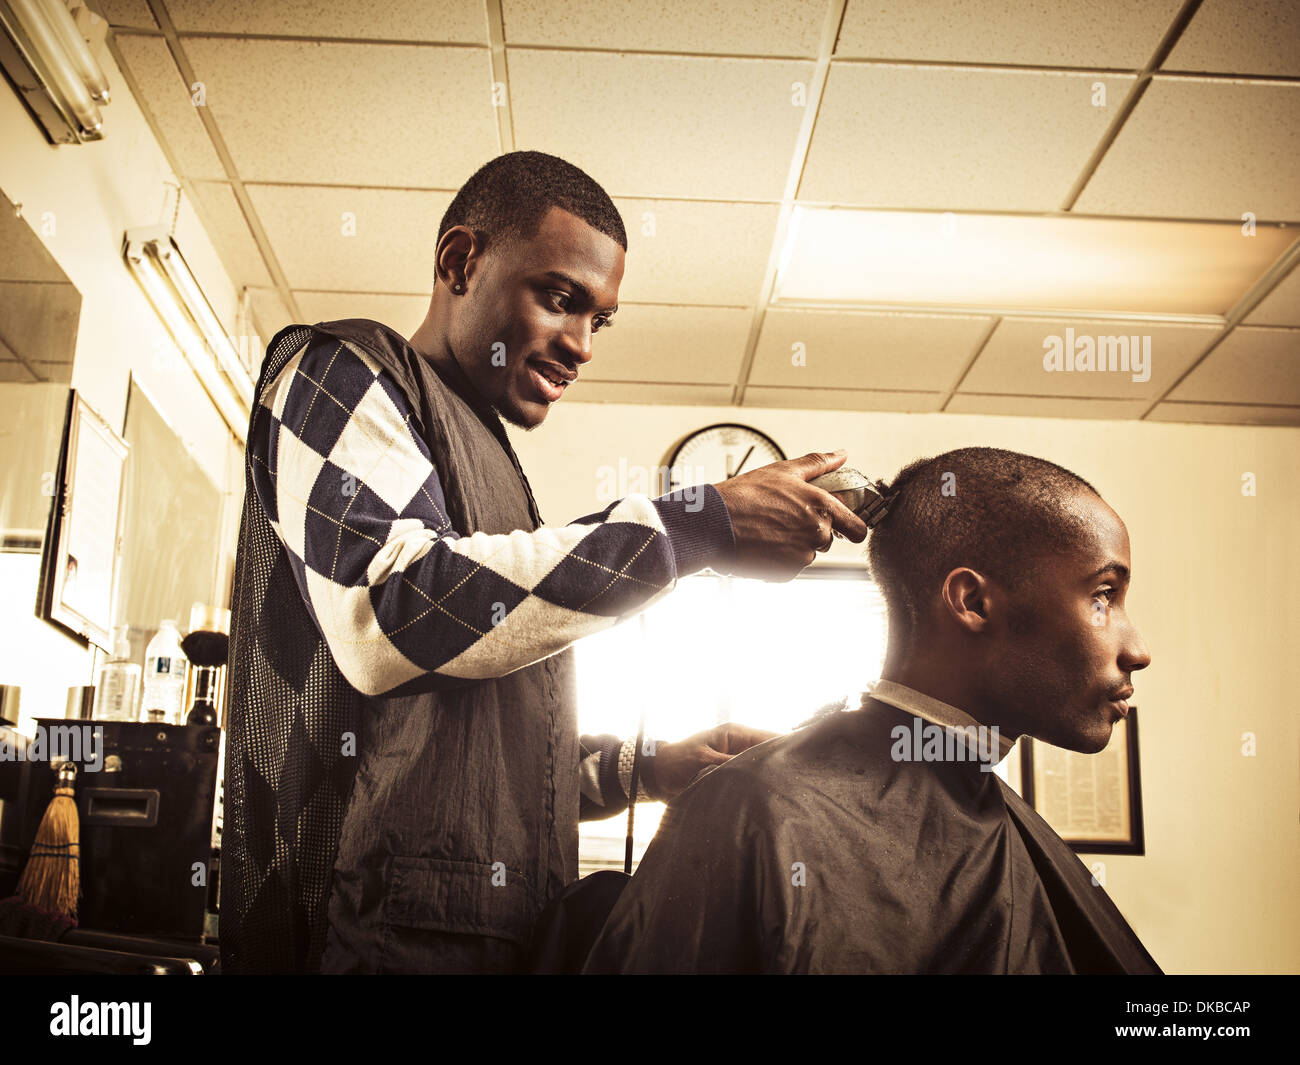 Barber in traditional barber shop shaving man's head - Stock Image